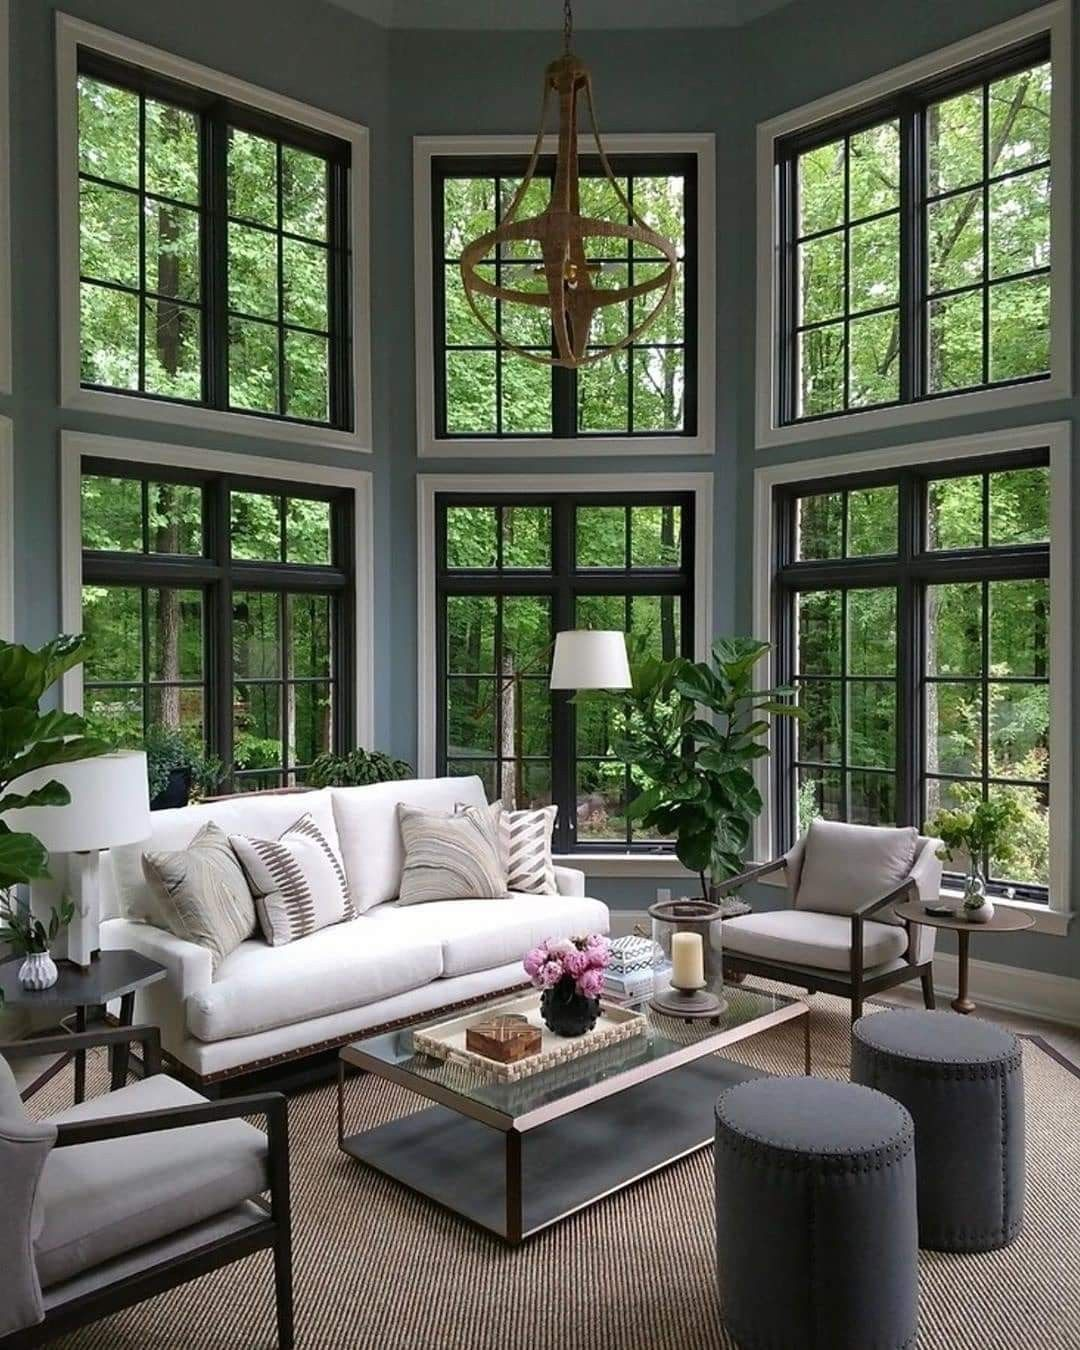 Pin By Ghena On For The Home Dream Home Design Home Decor Home Remodeling